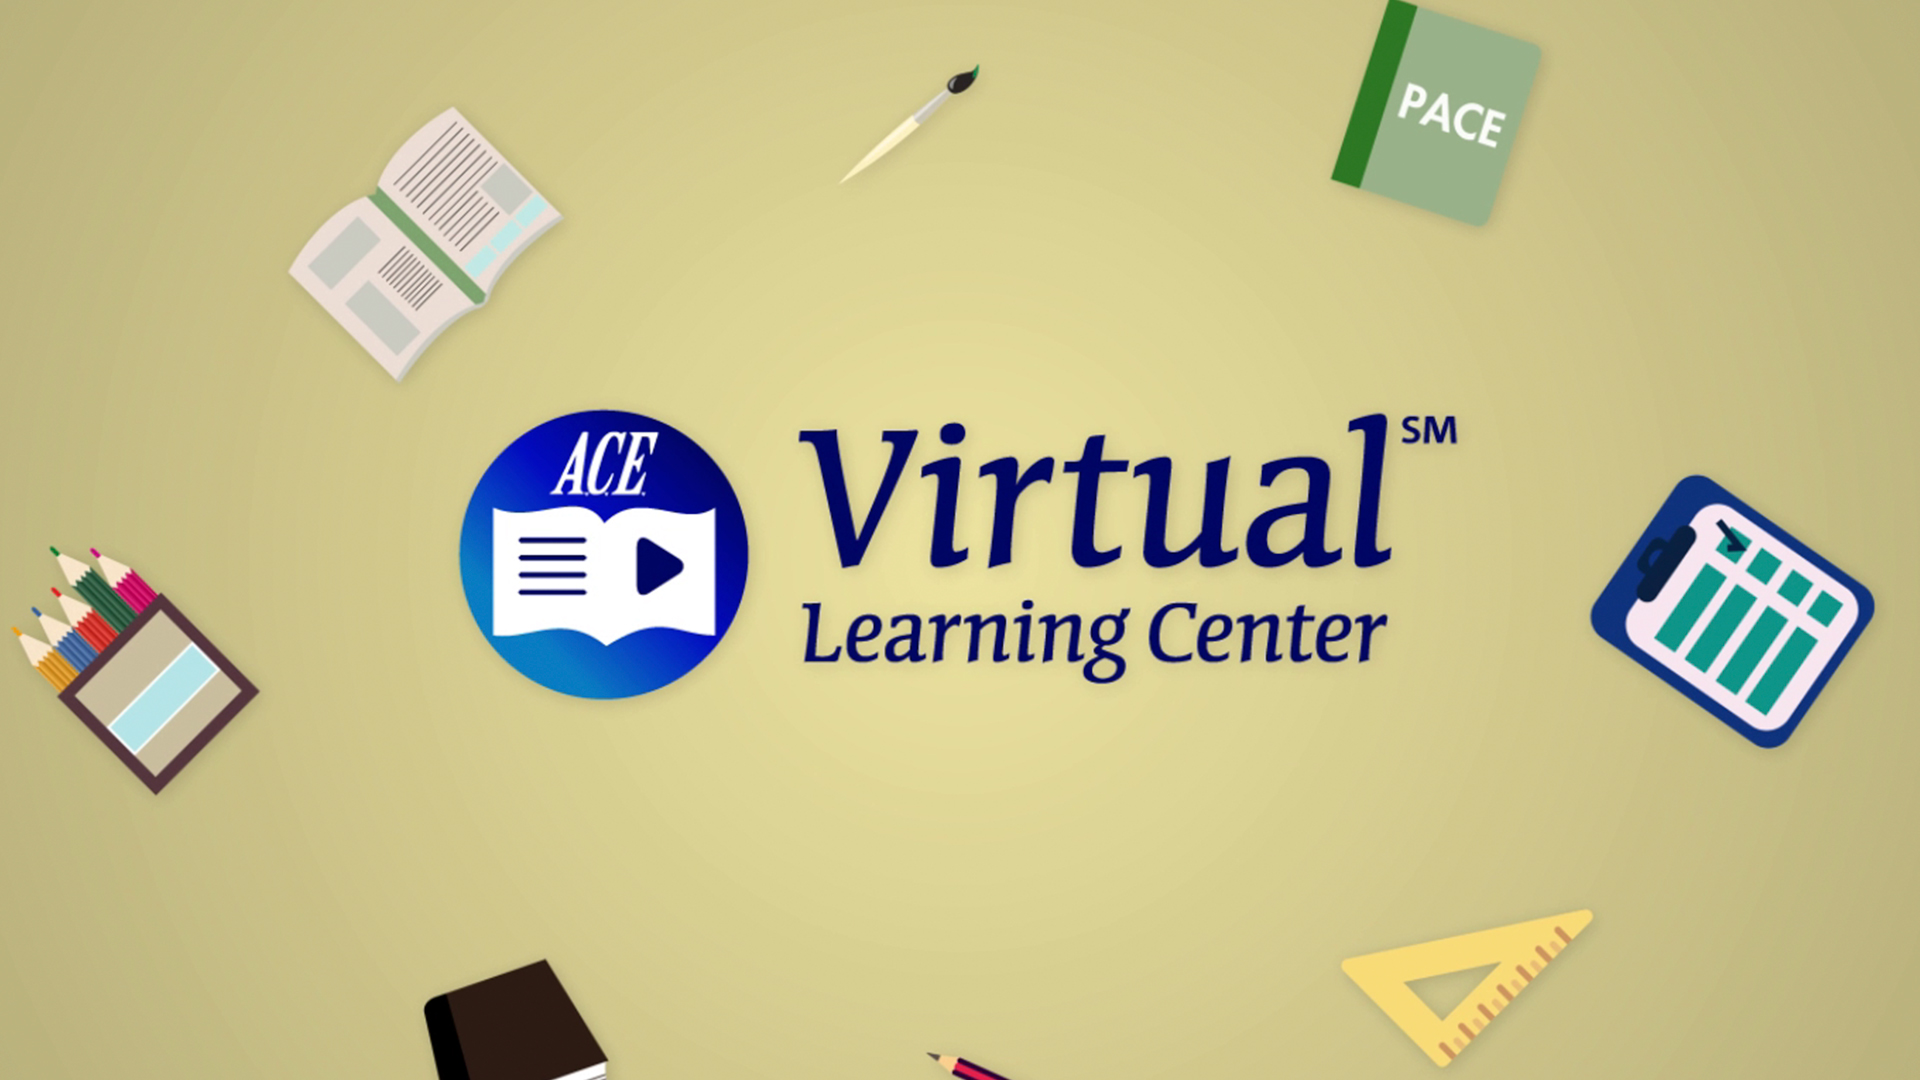 What Is a Virtual Learning Center?